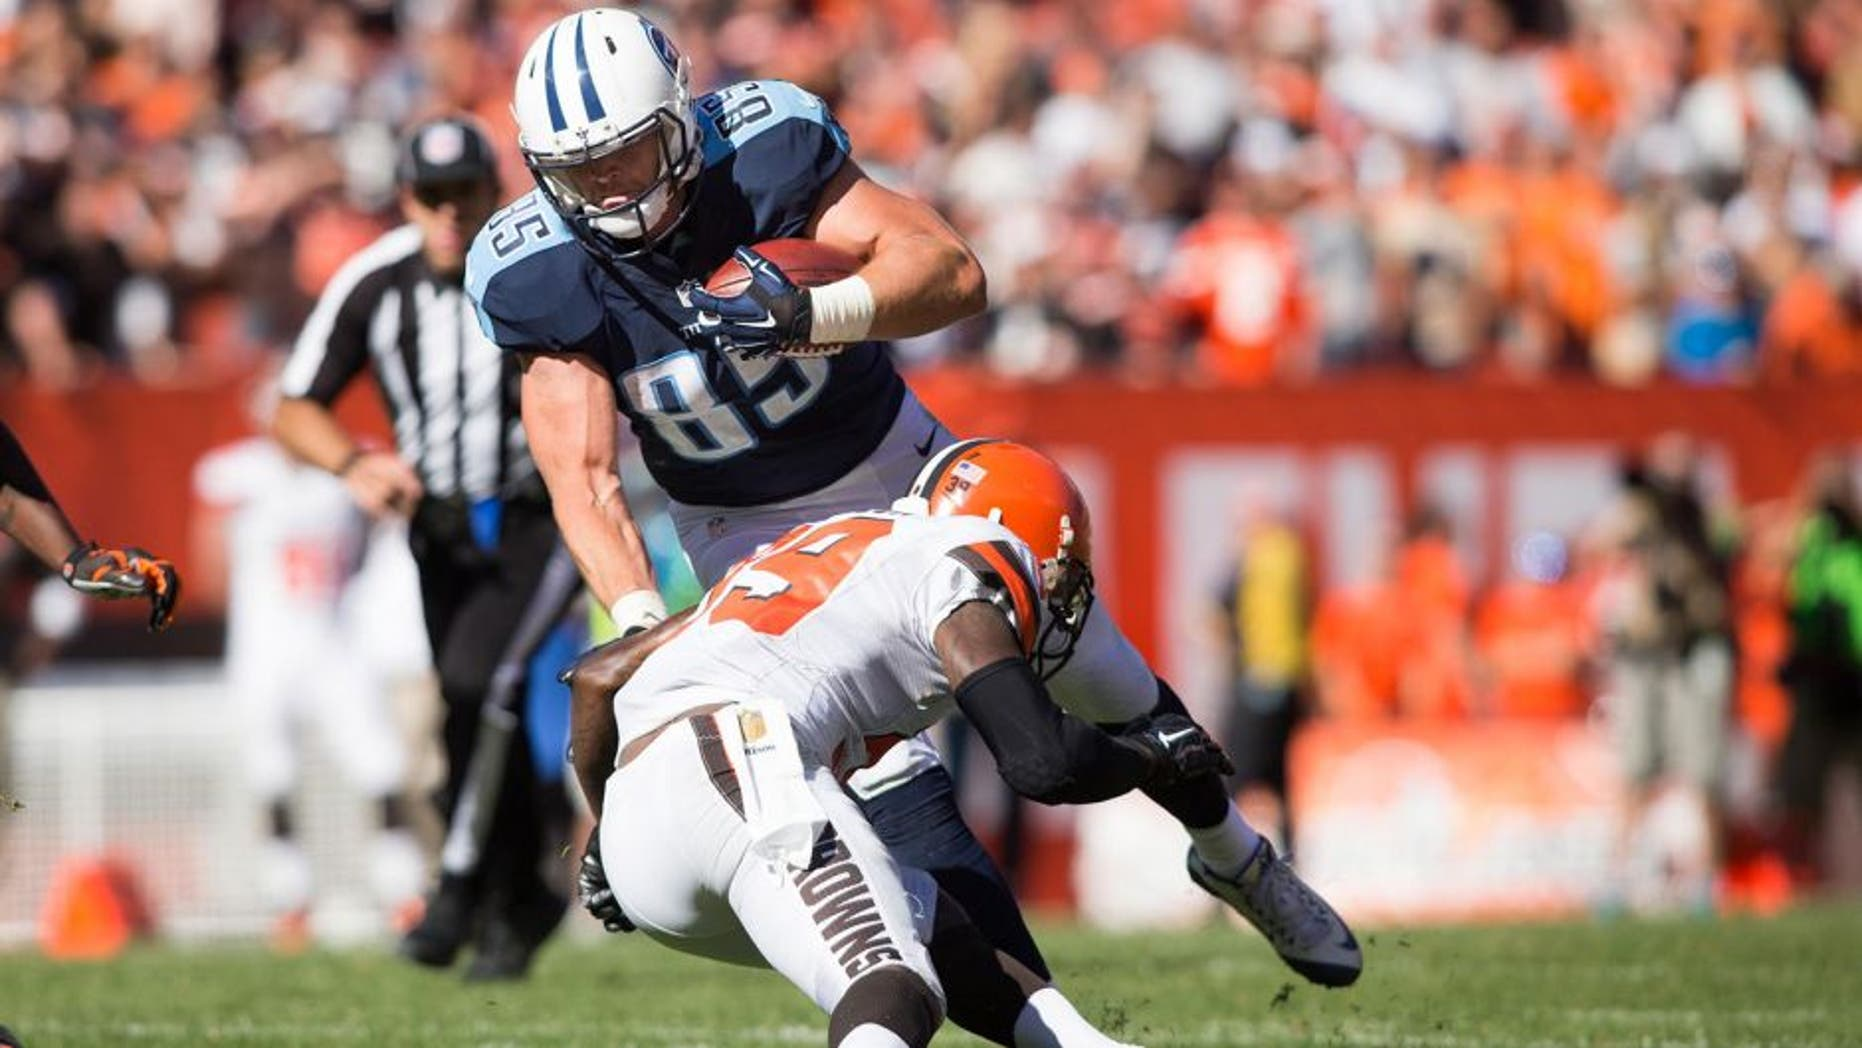 Sep 20, 2015; Cleveland, OH, USA; Tennessee Titans tight end Chase Coffman (85) gets tackled by Cleveland Browns free safety Tashaun Gipson (39) during the fourth quarter at FirstEnergy Stadium. Mandatory Credit: Scott R. Galvin-USA TODAY Sports